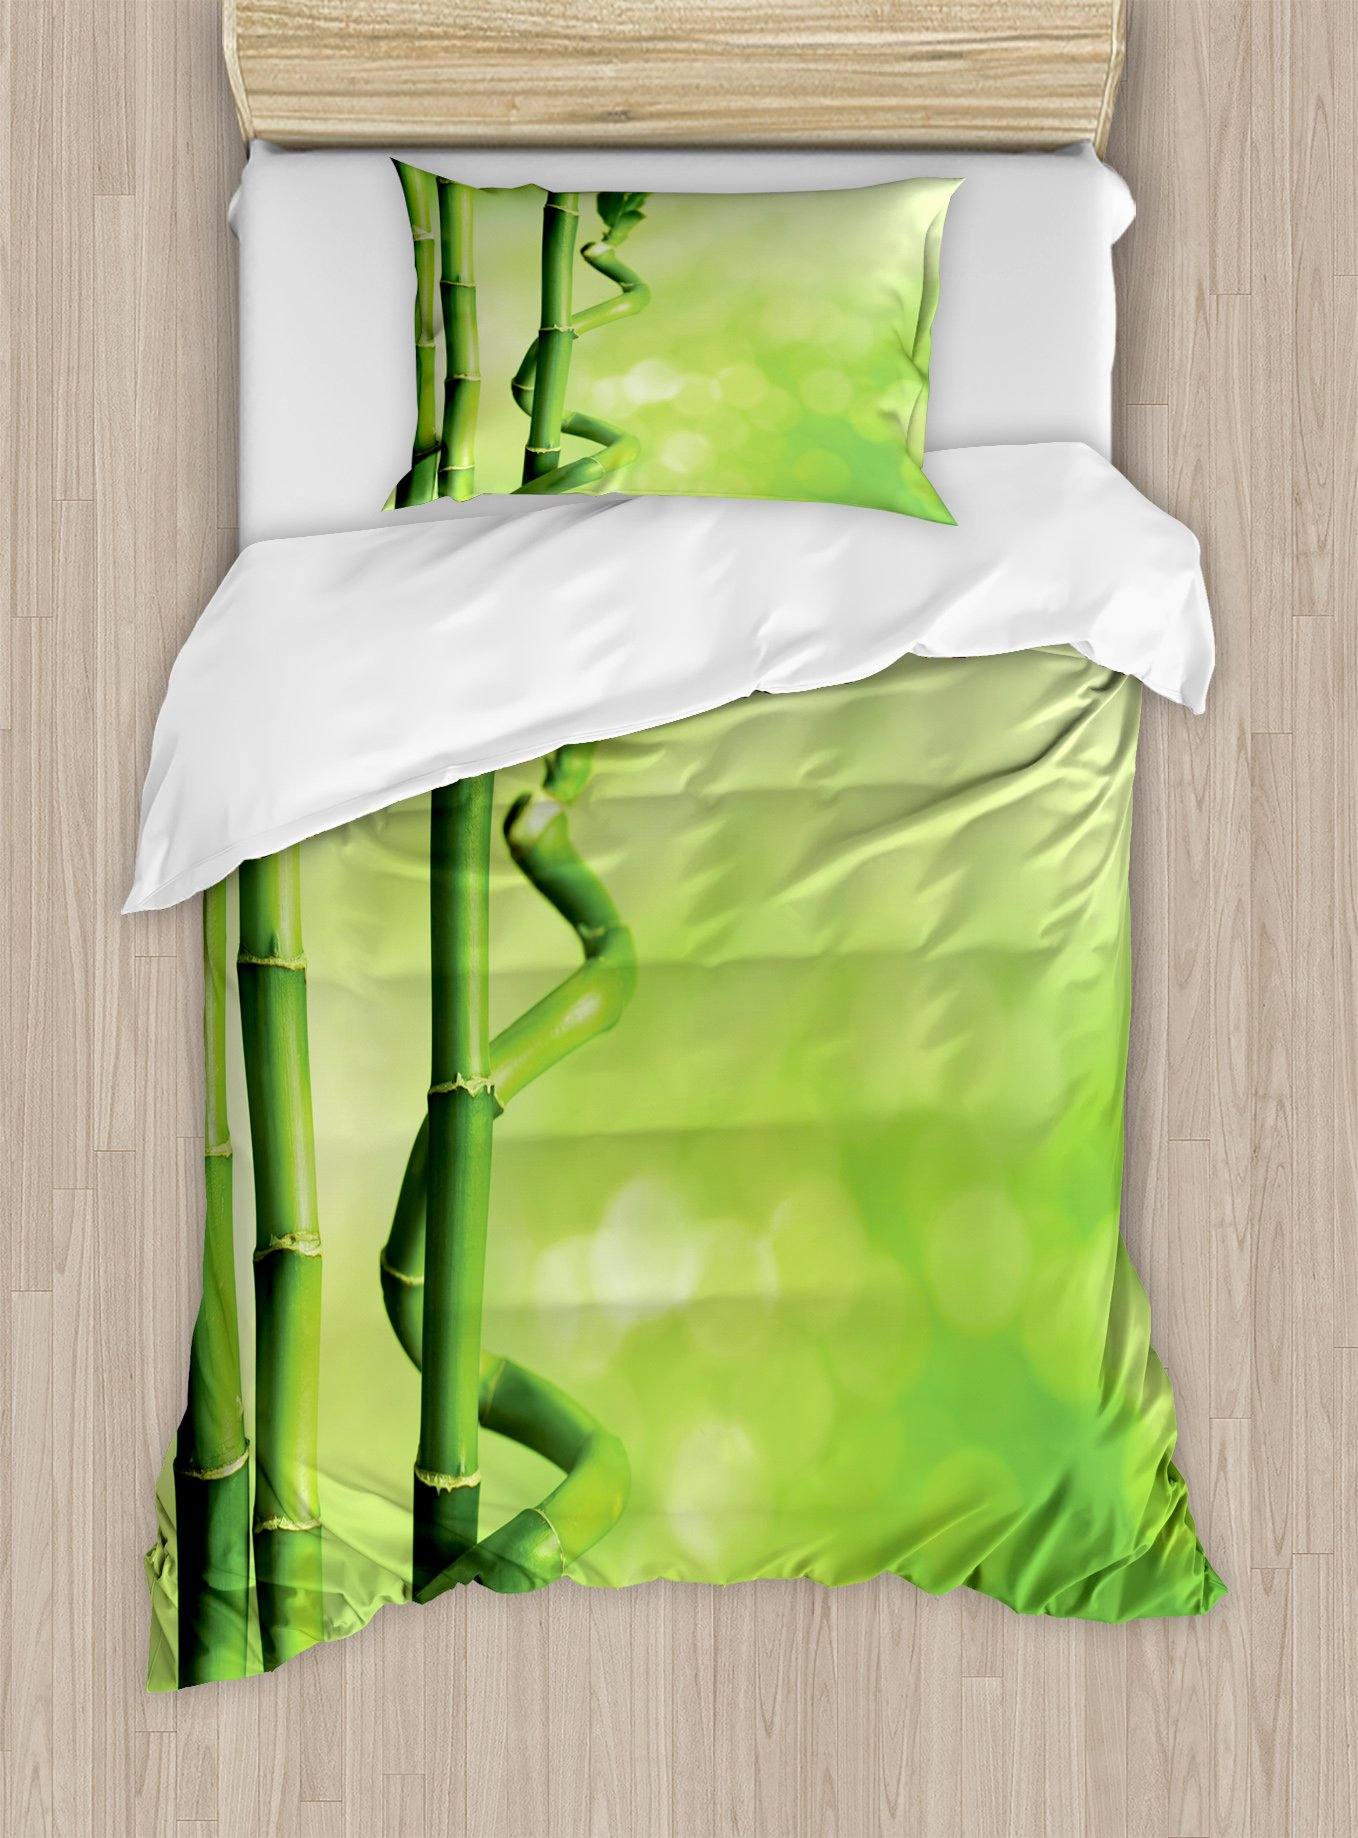 Ambesonne Green Duvet Cover Set Twin Size, Bamboo Stems Nature Ecology Sunbeams Soft Spring Scenic Spa Health Relaxation, Decorative 2 Piece Bedding Set with 1 Pillow Sham, Green Light Green